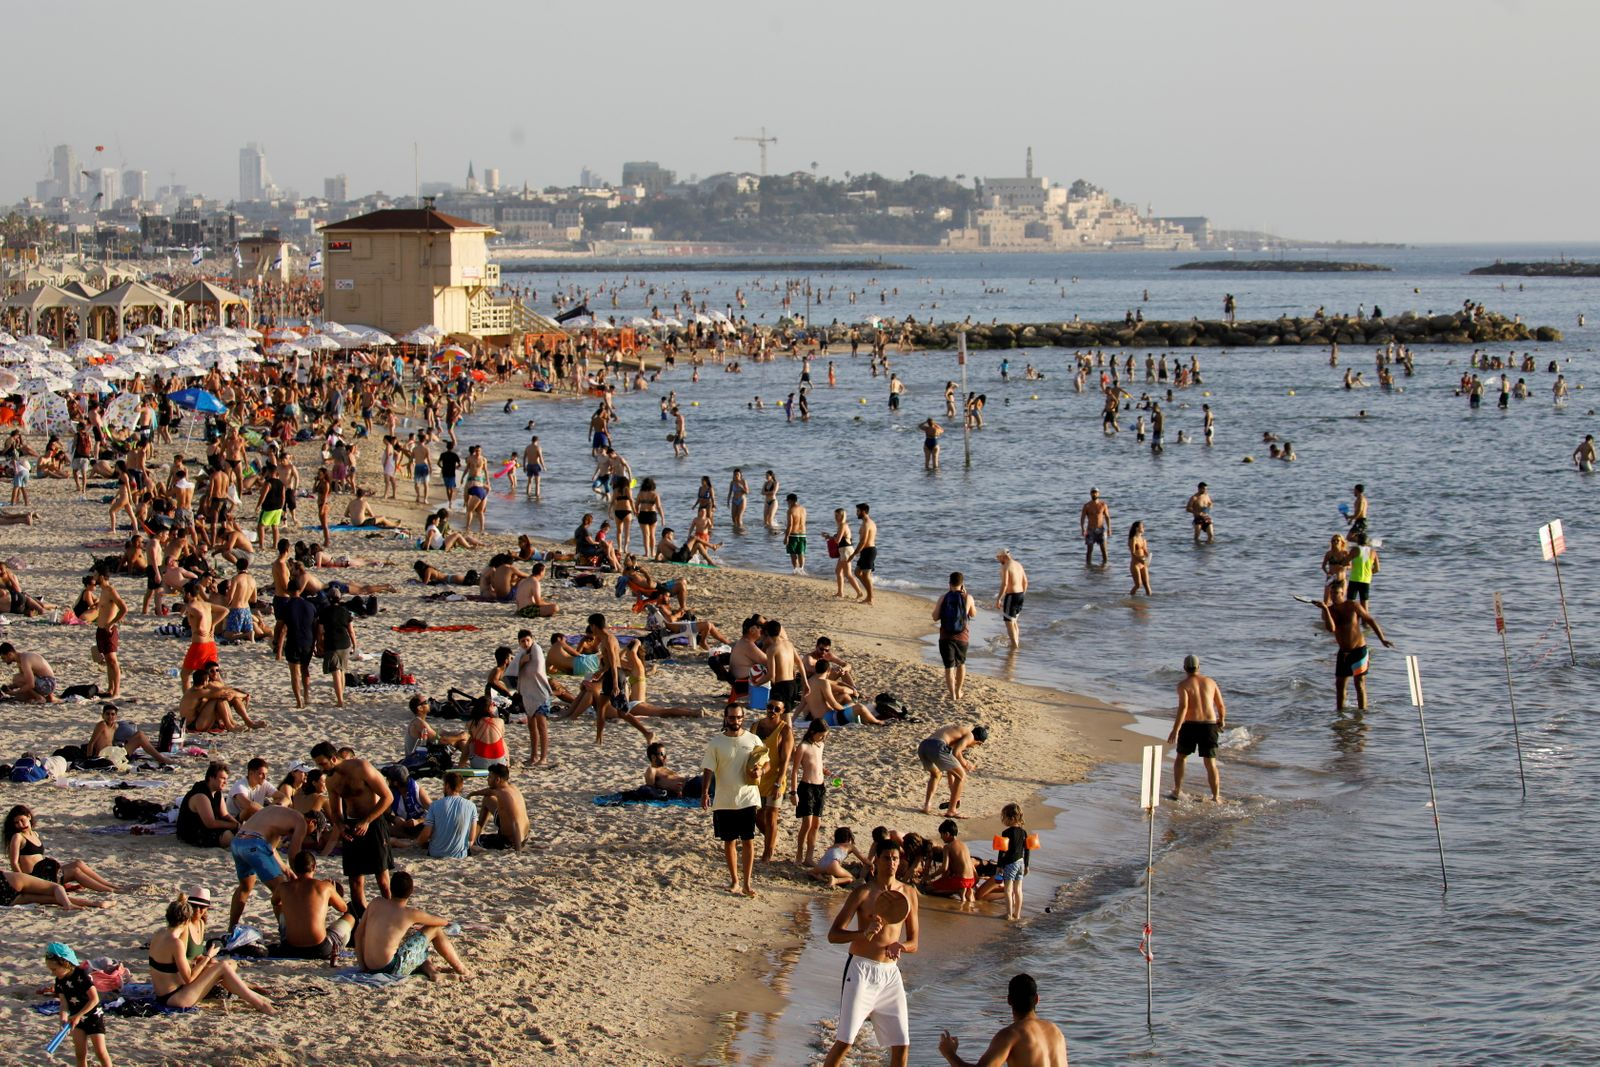 FILE PHOTO: Beachgoers hang out on the shore of the Mediterranean sea in Tel Aviv as coronavirus disease (COVID-19) restrictions ease in Israel